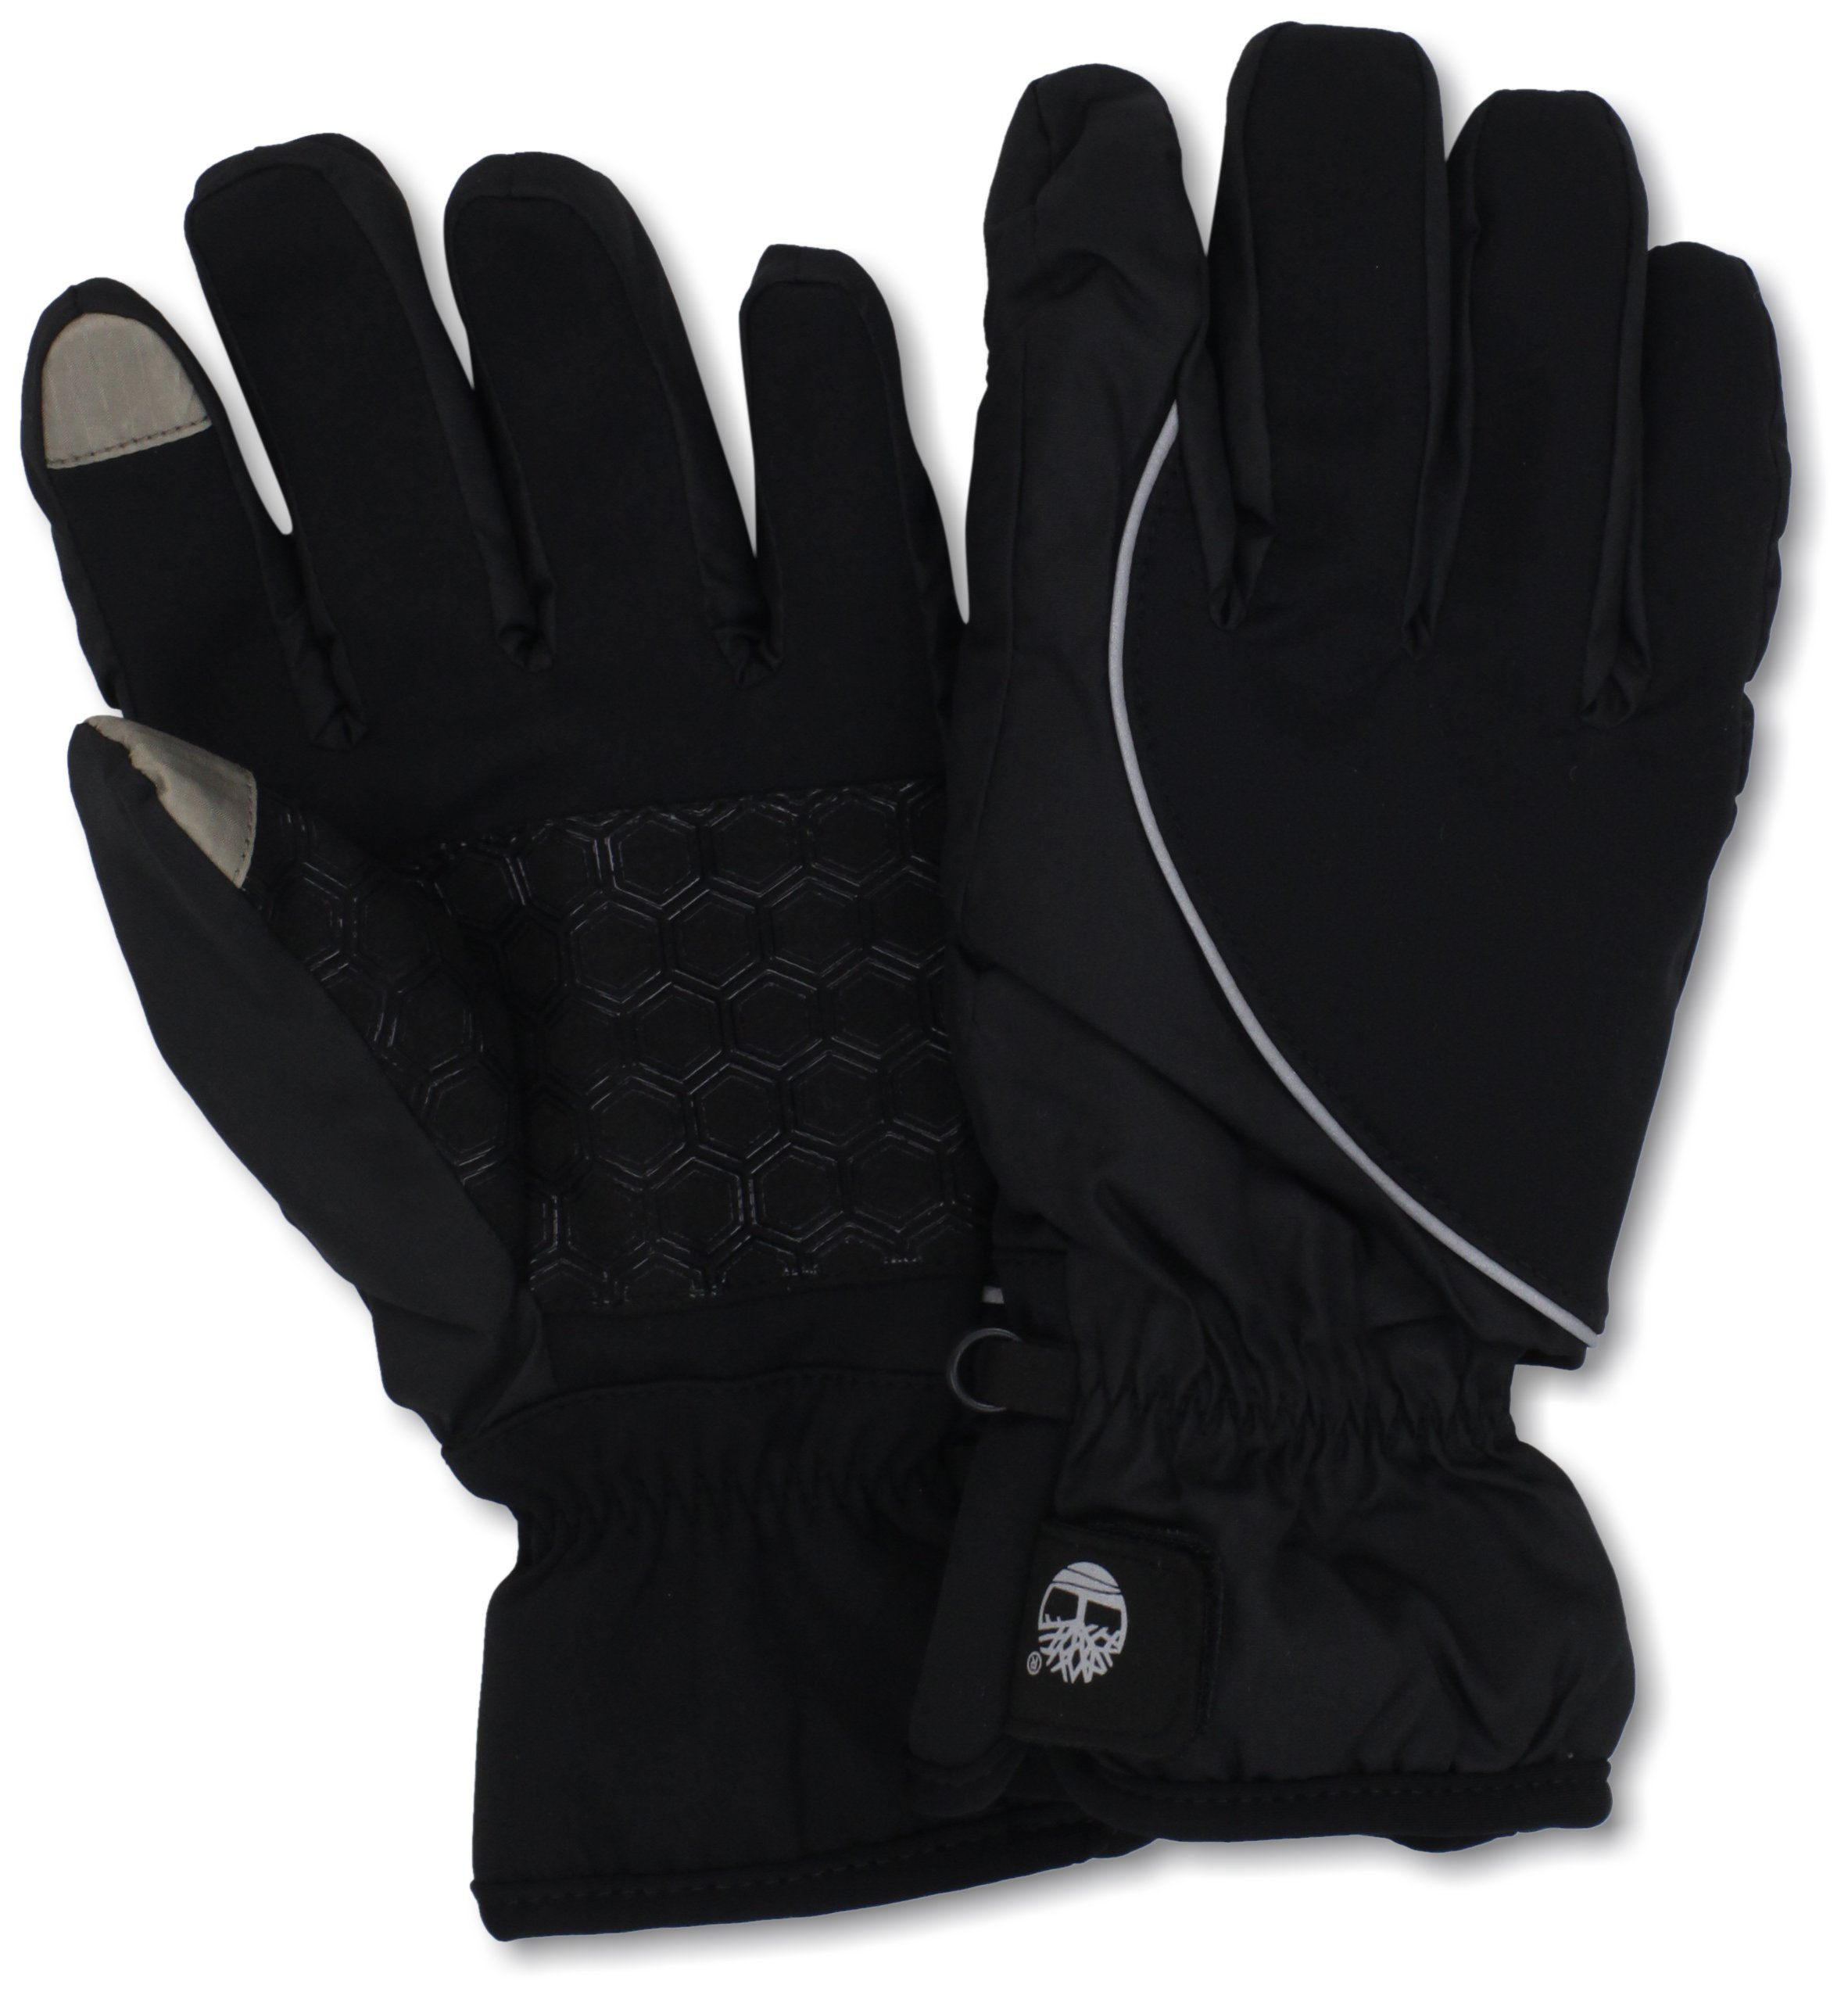 Timberland Men's Commuter Soft Shell Glove Printed Logo with Touchscreen Technology, Black/Grey, Large